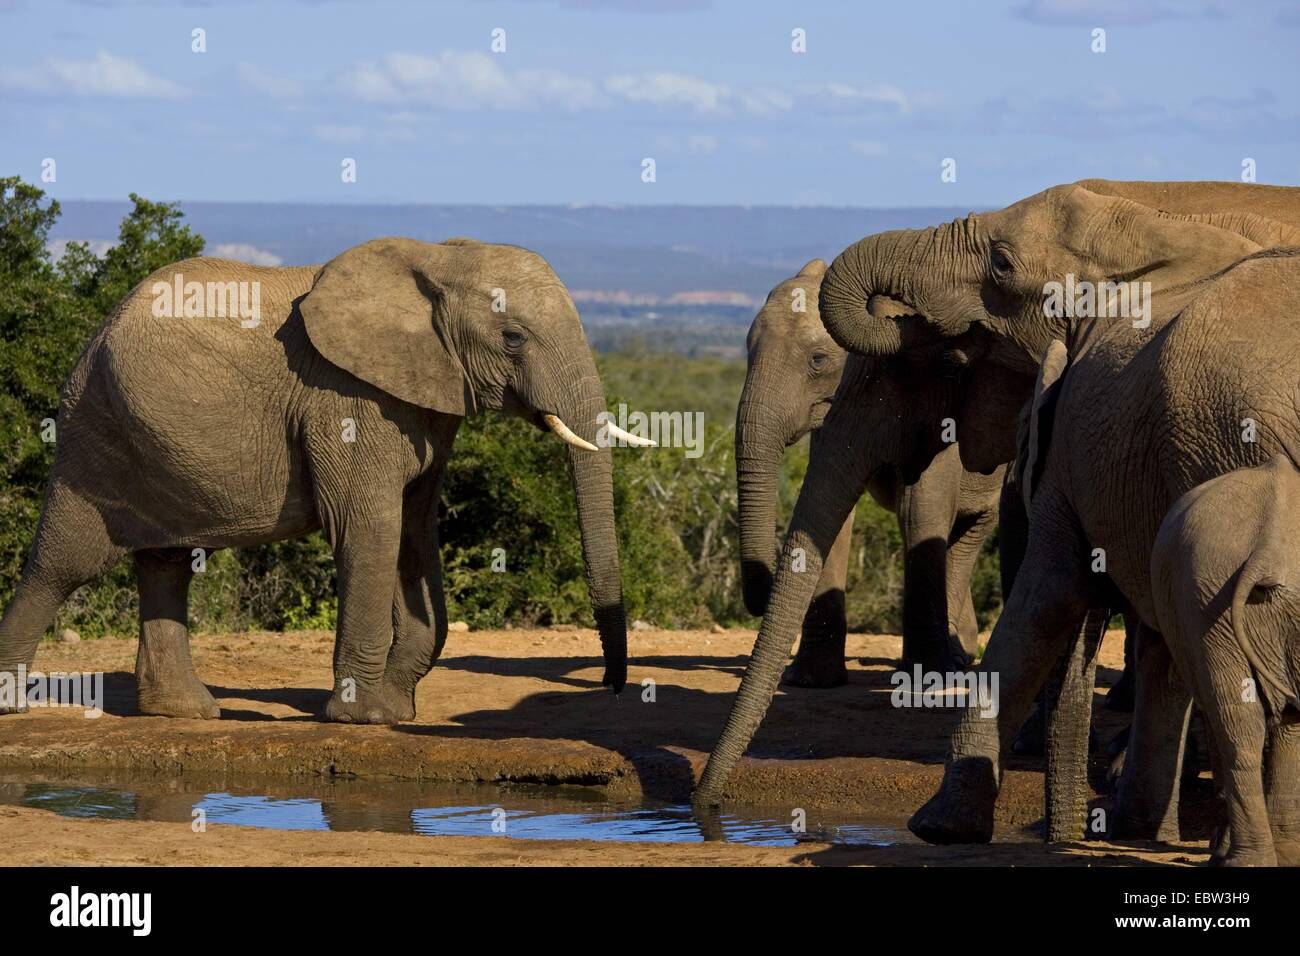 African elephant (Loxodonta africana), drinking family, South Africa, Eastern Cape, Addo Elephant National Park - Stock Image